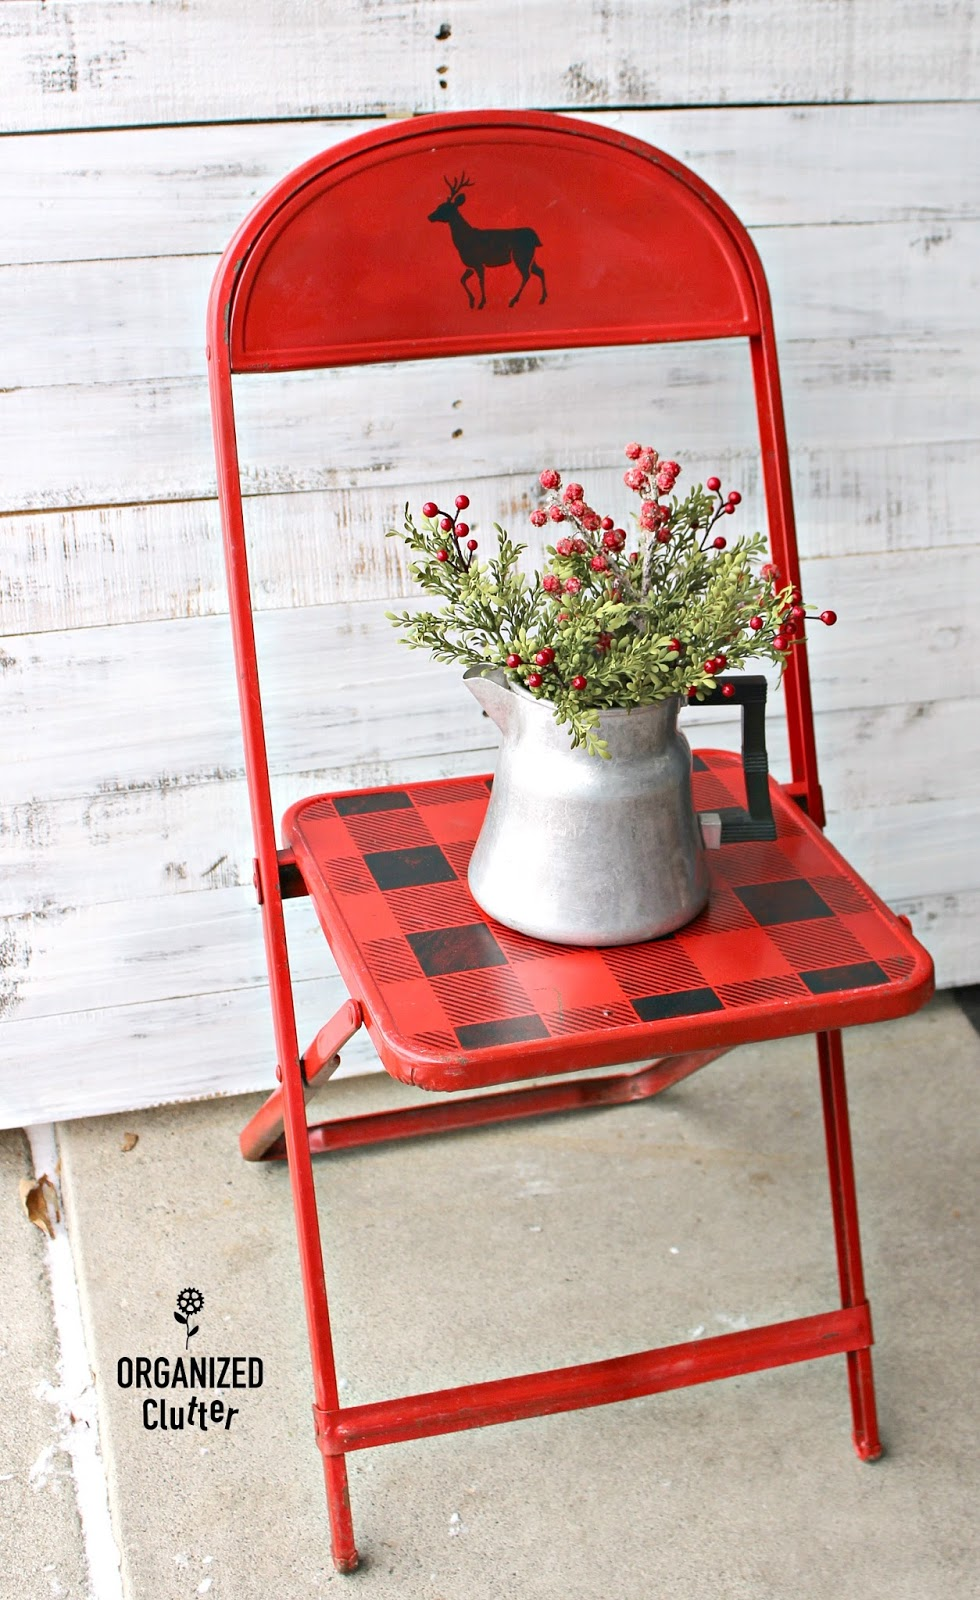 Folding Chair Upcycle Covers For Rent In Philadelphia Thrift Shop Vintage Child's Metal Christmas | Organized Clutter